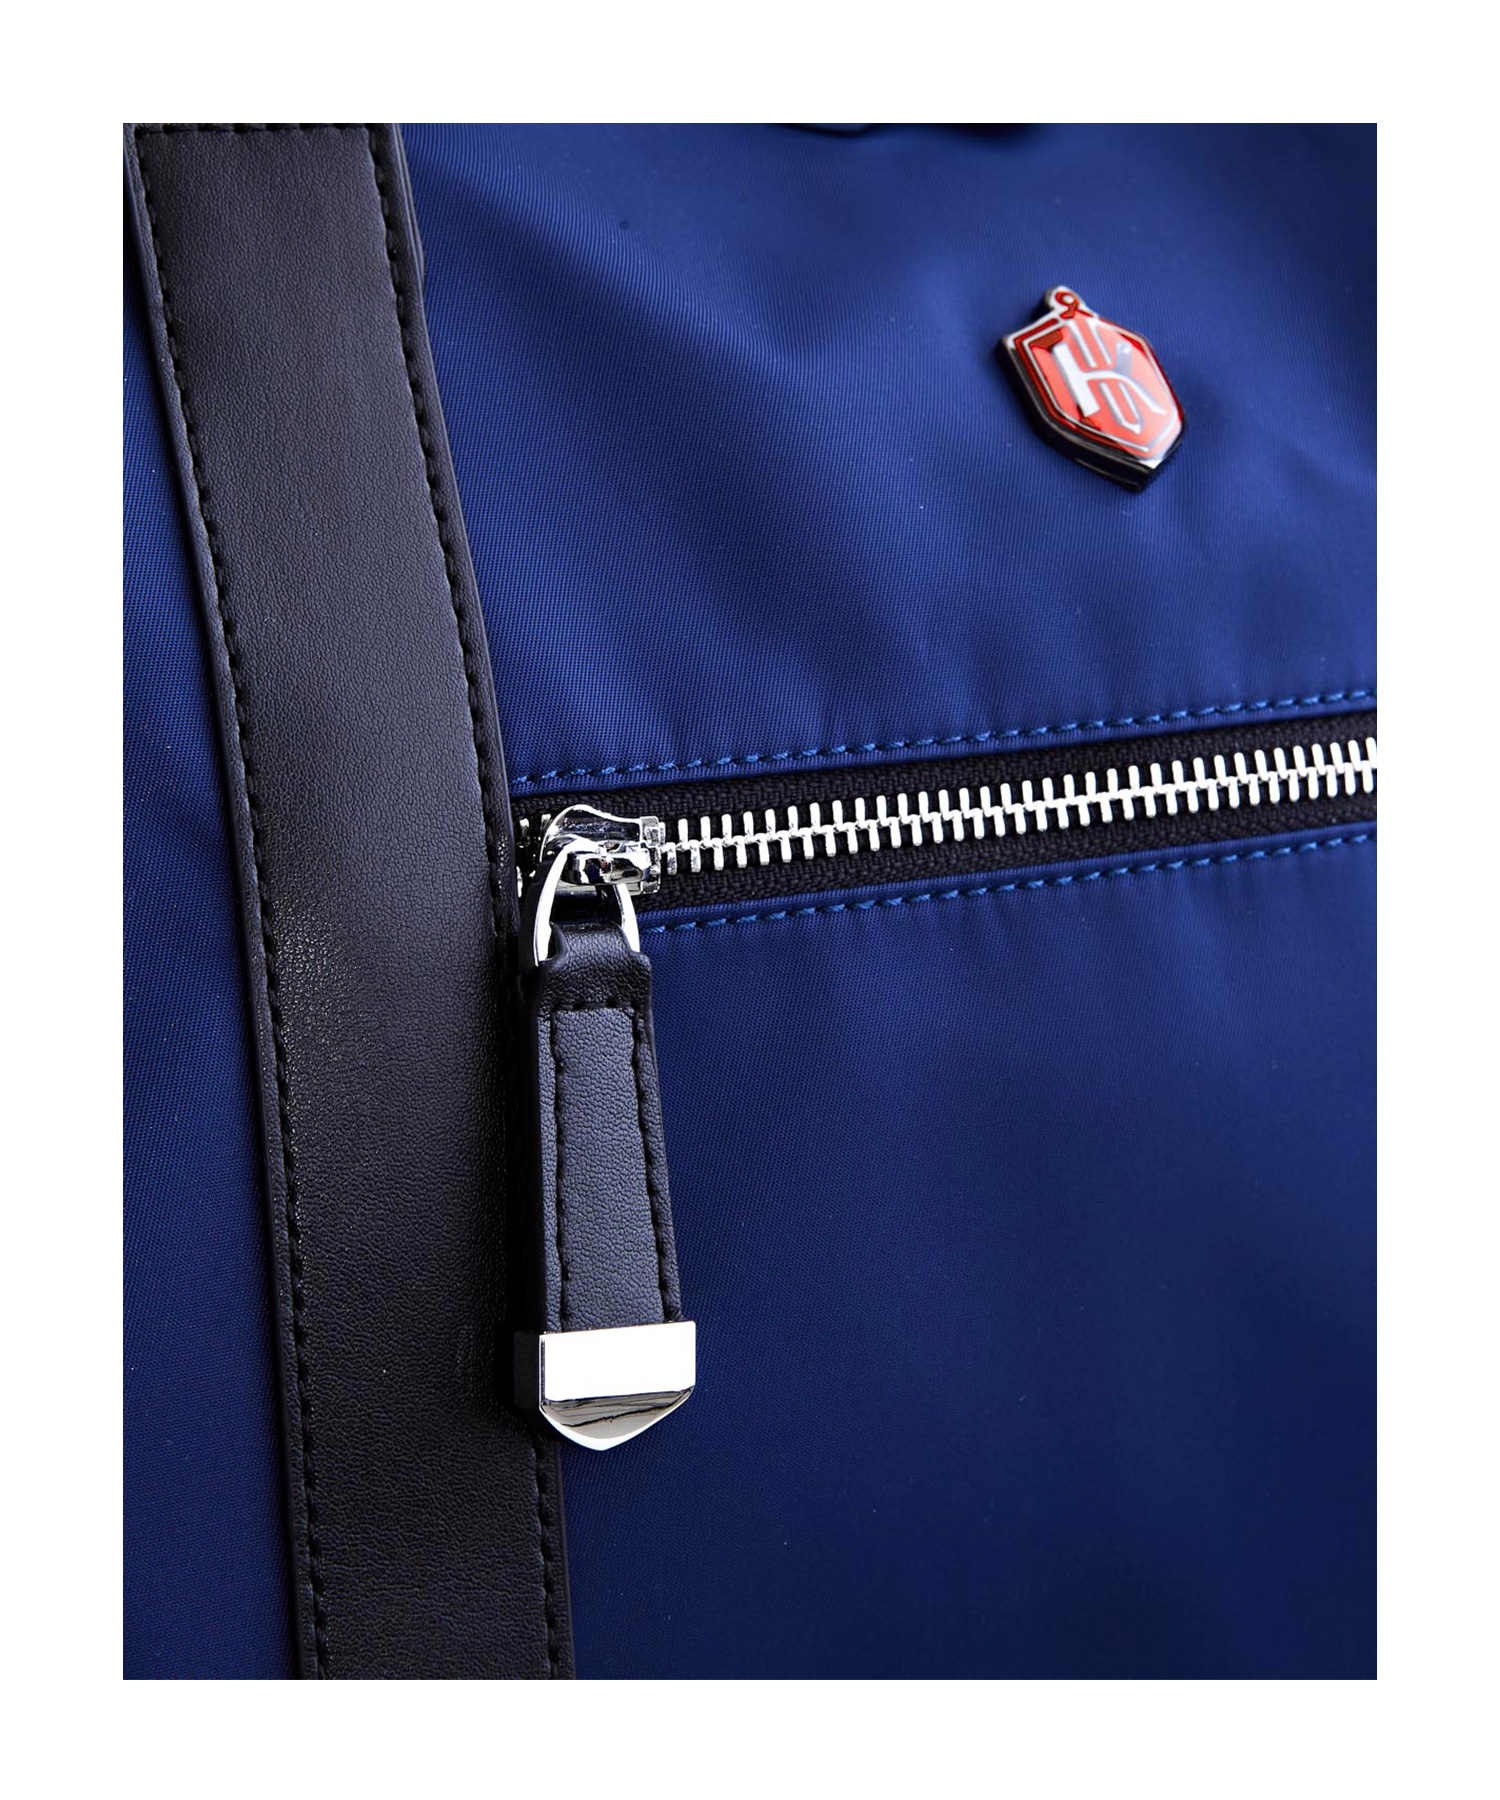 krimcode business duffel bag blue zipper